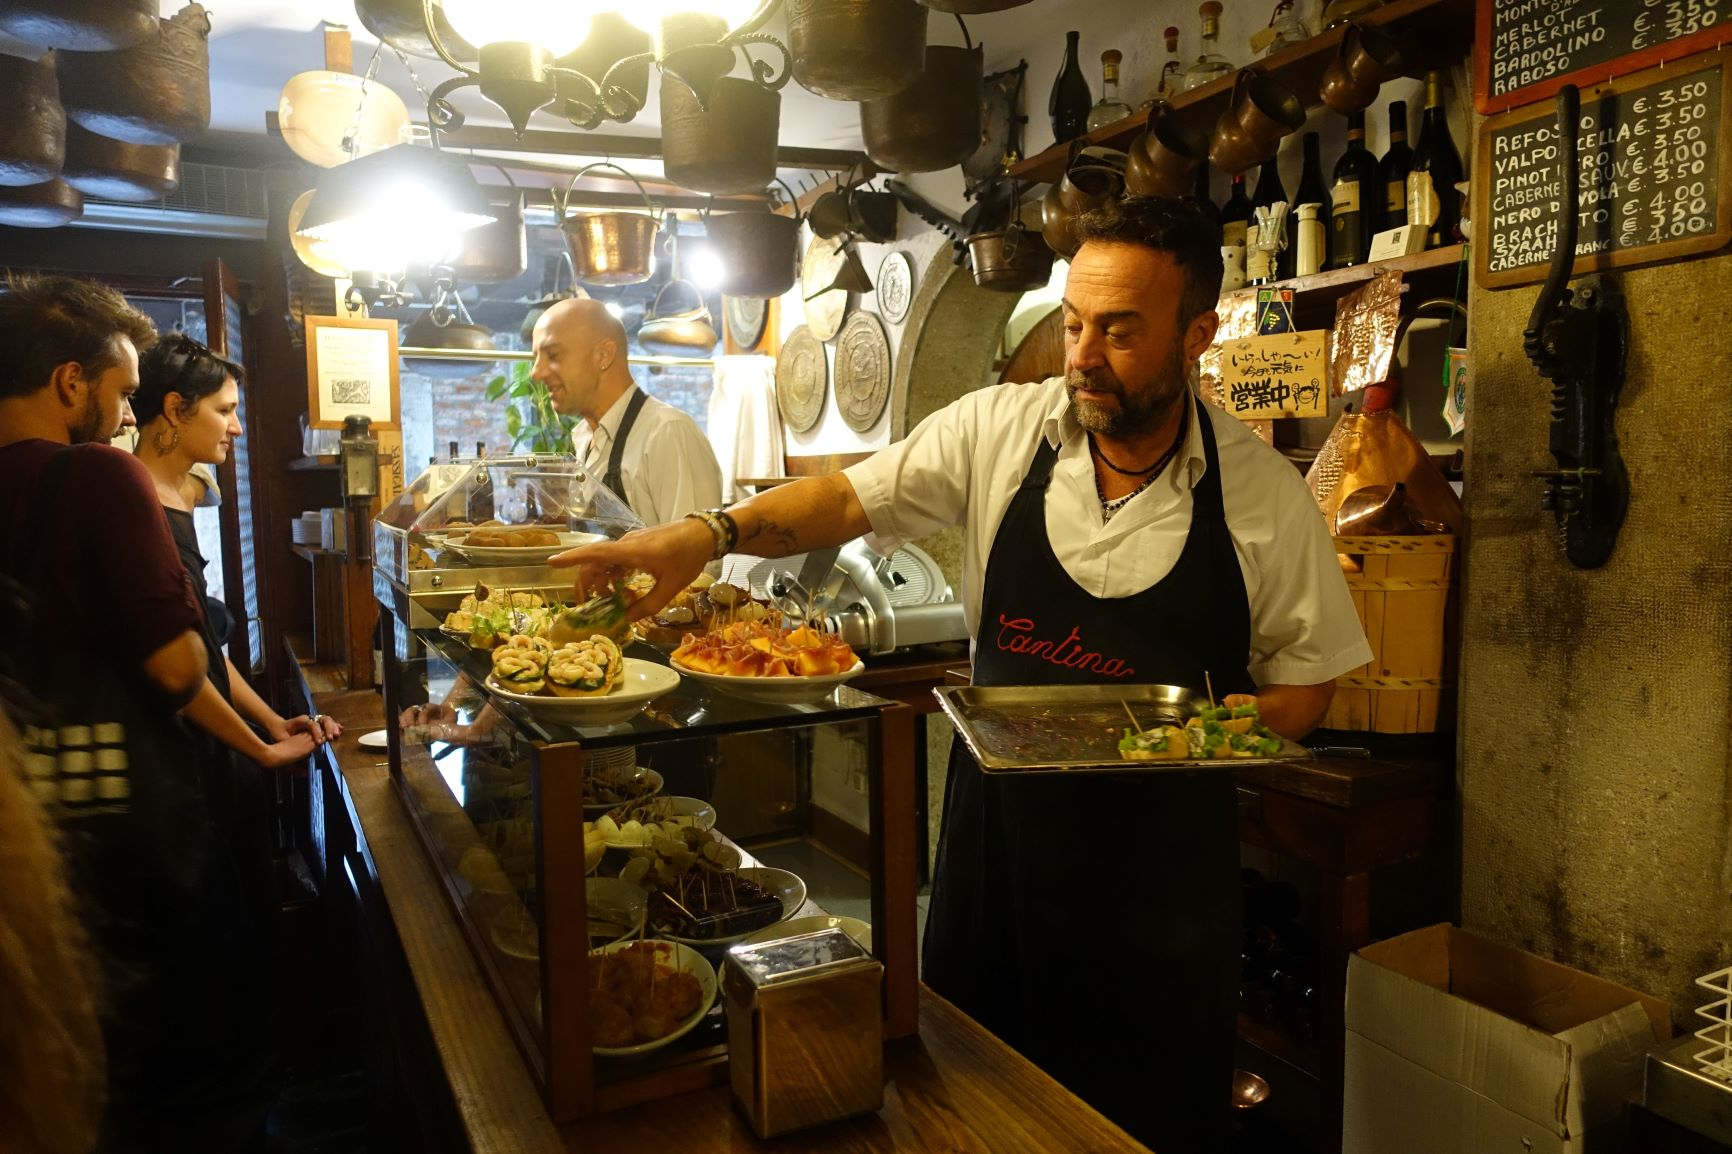 Where to eat in Venice, Italy